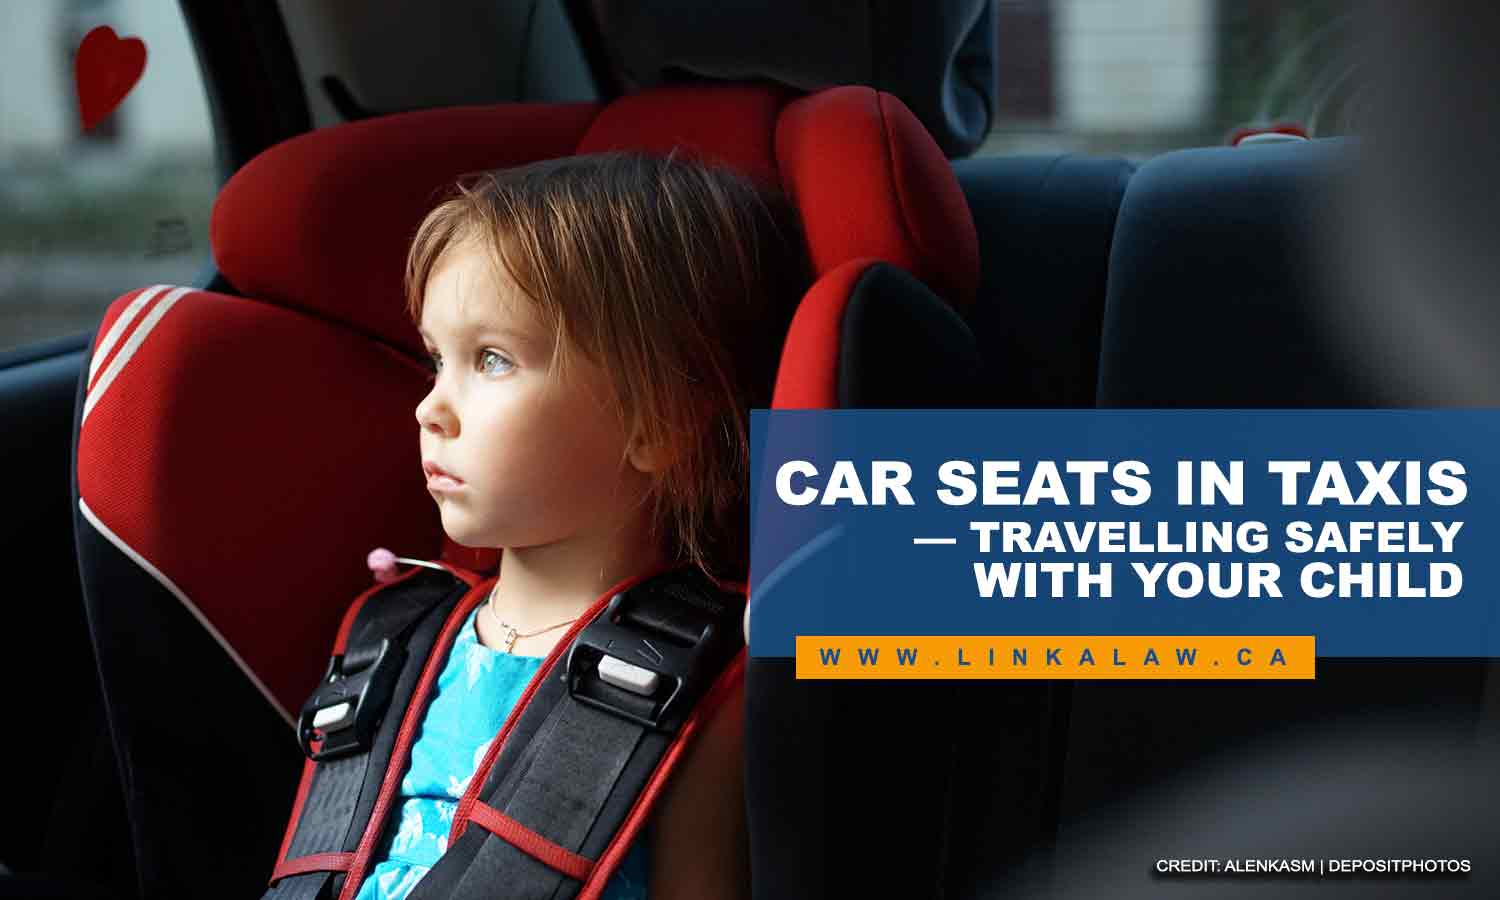 Car Seats in Taxis — Travelling Safely With Your Child